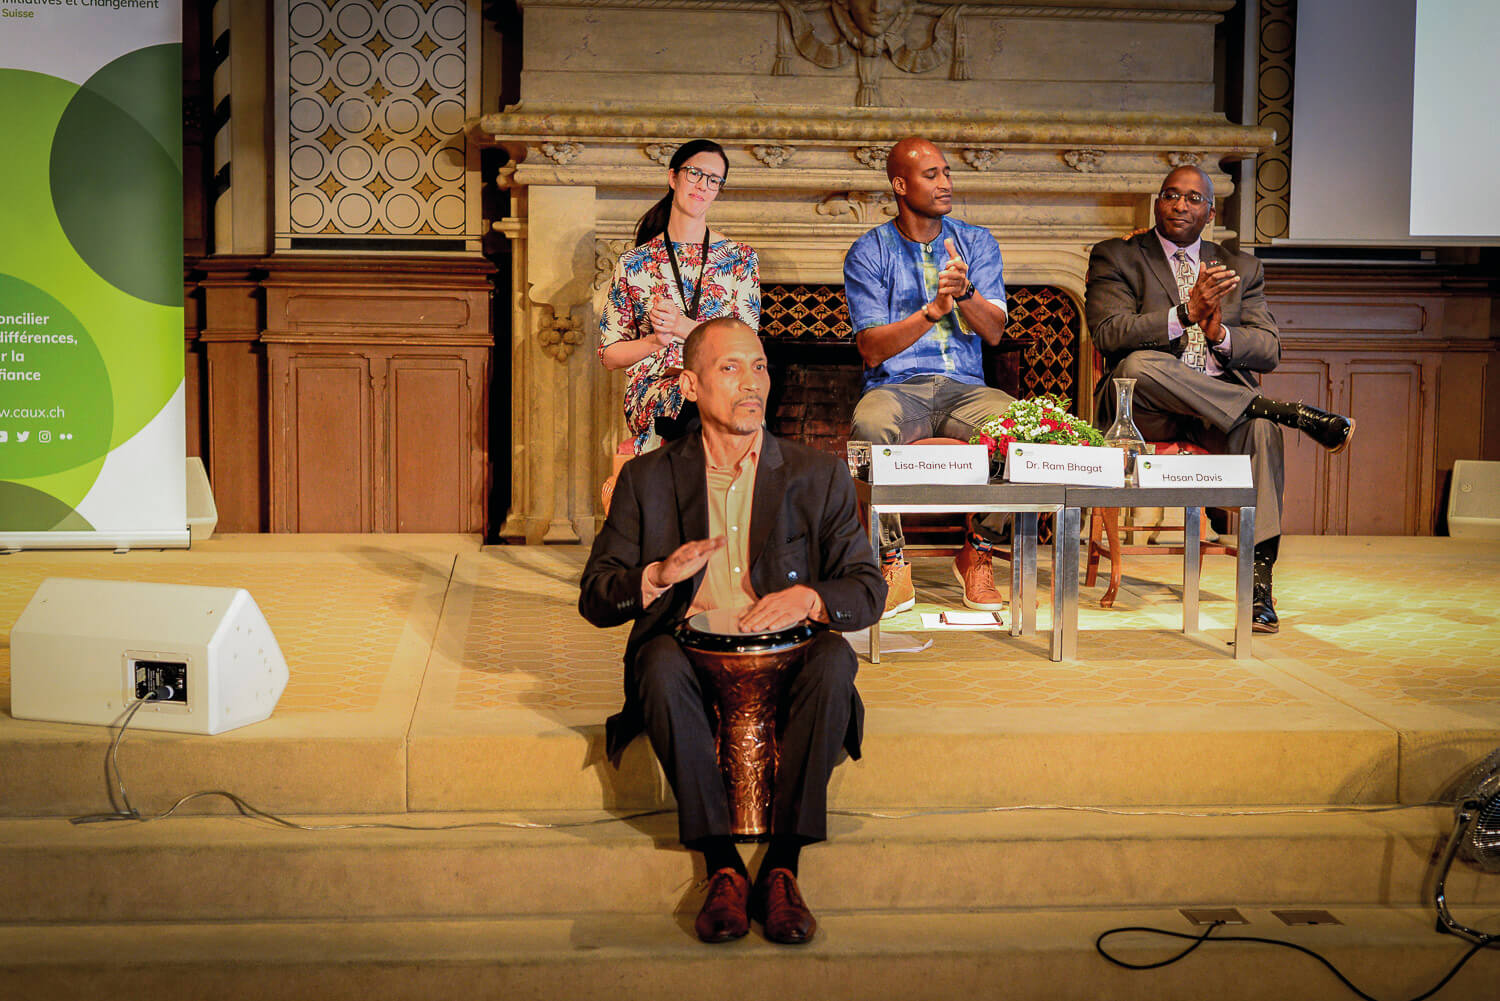 Ram at the Toward Inclusive Peace conference at the Caux Forum. Photo courtesy of Initiatives of Change Switzerland